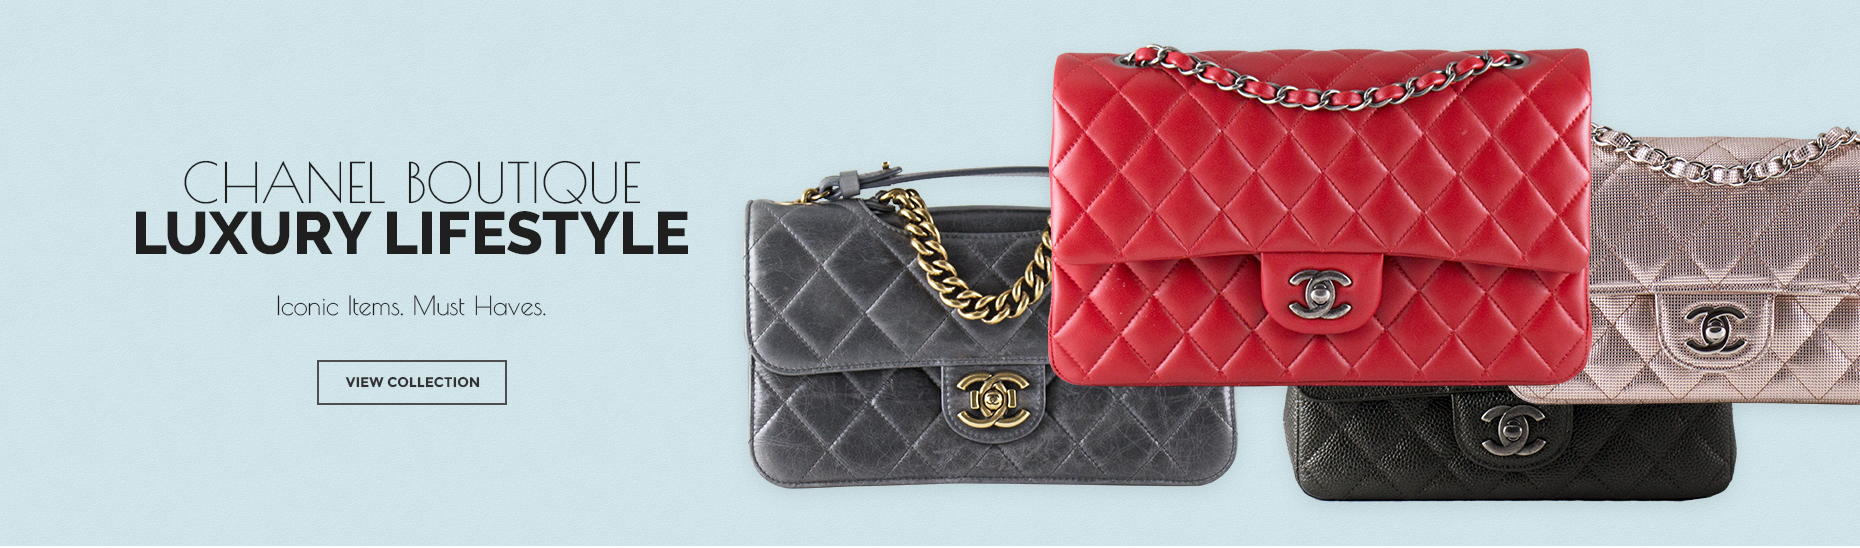 Shop the Chanel Boutique